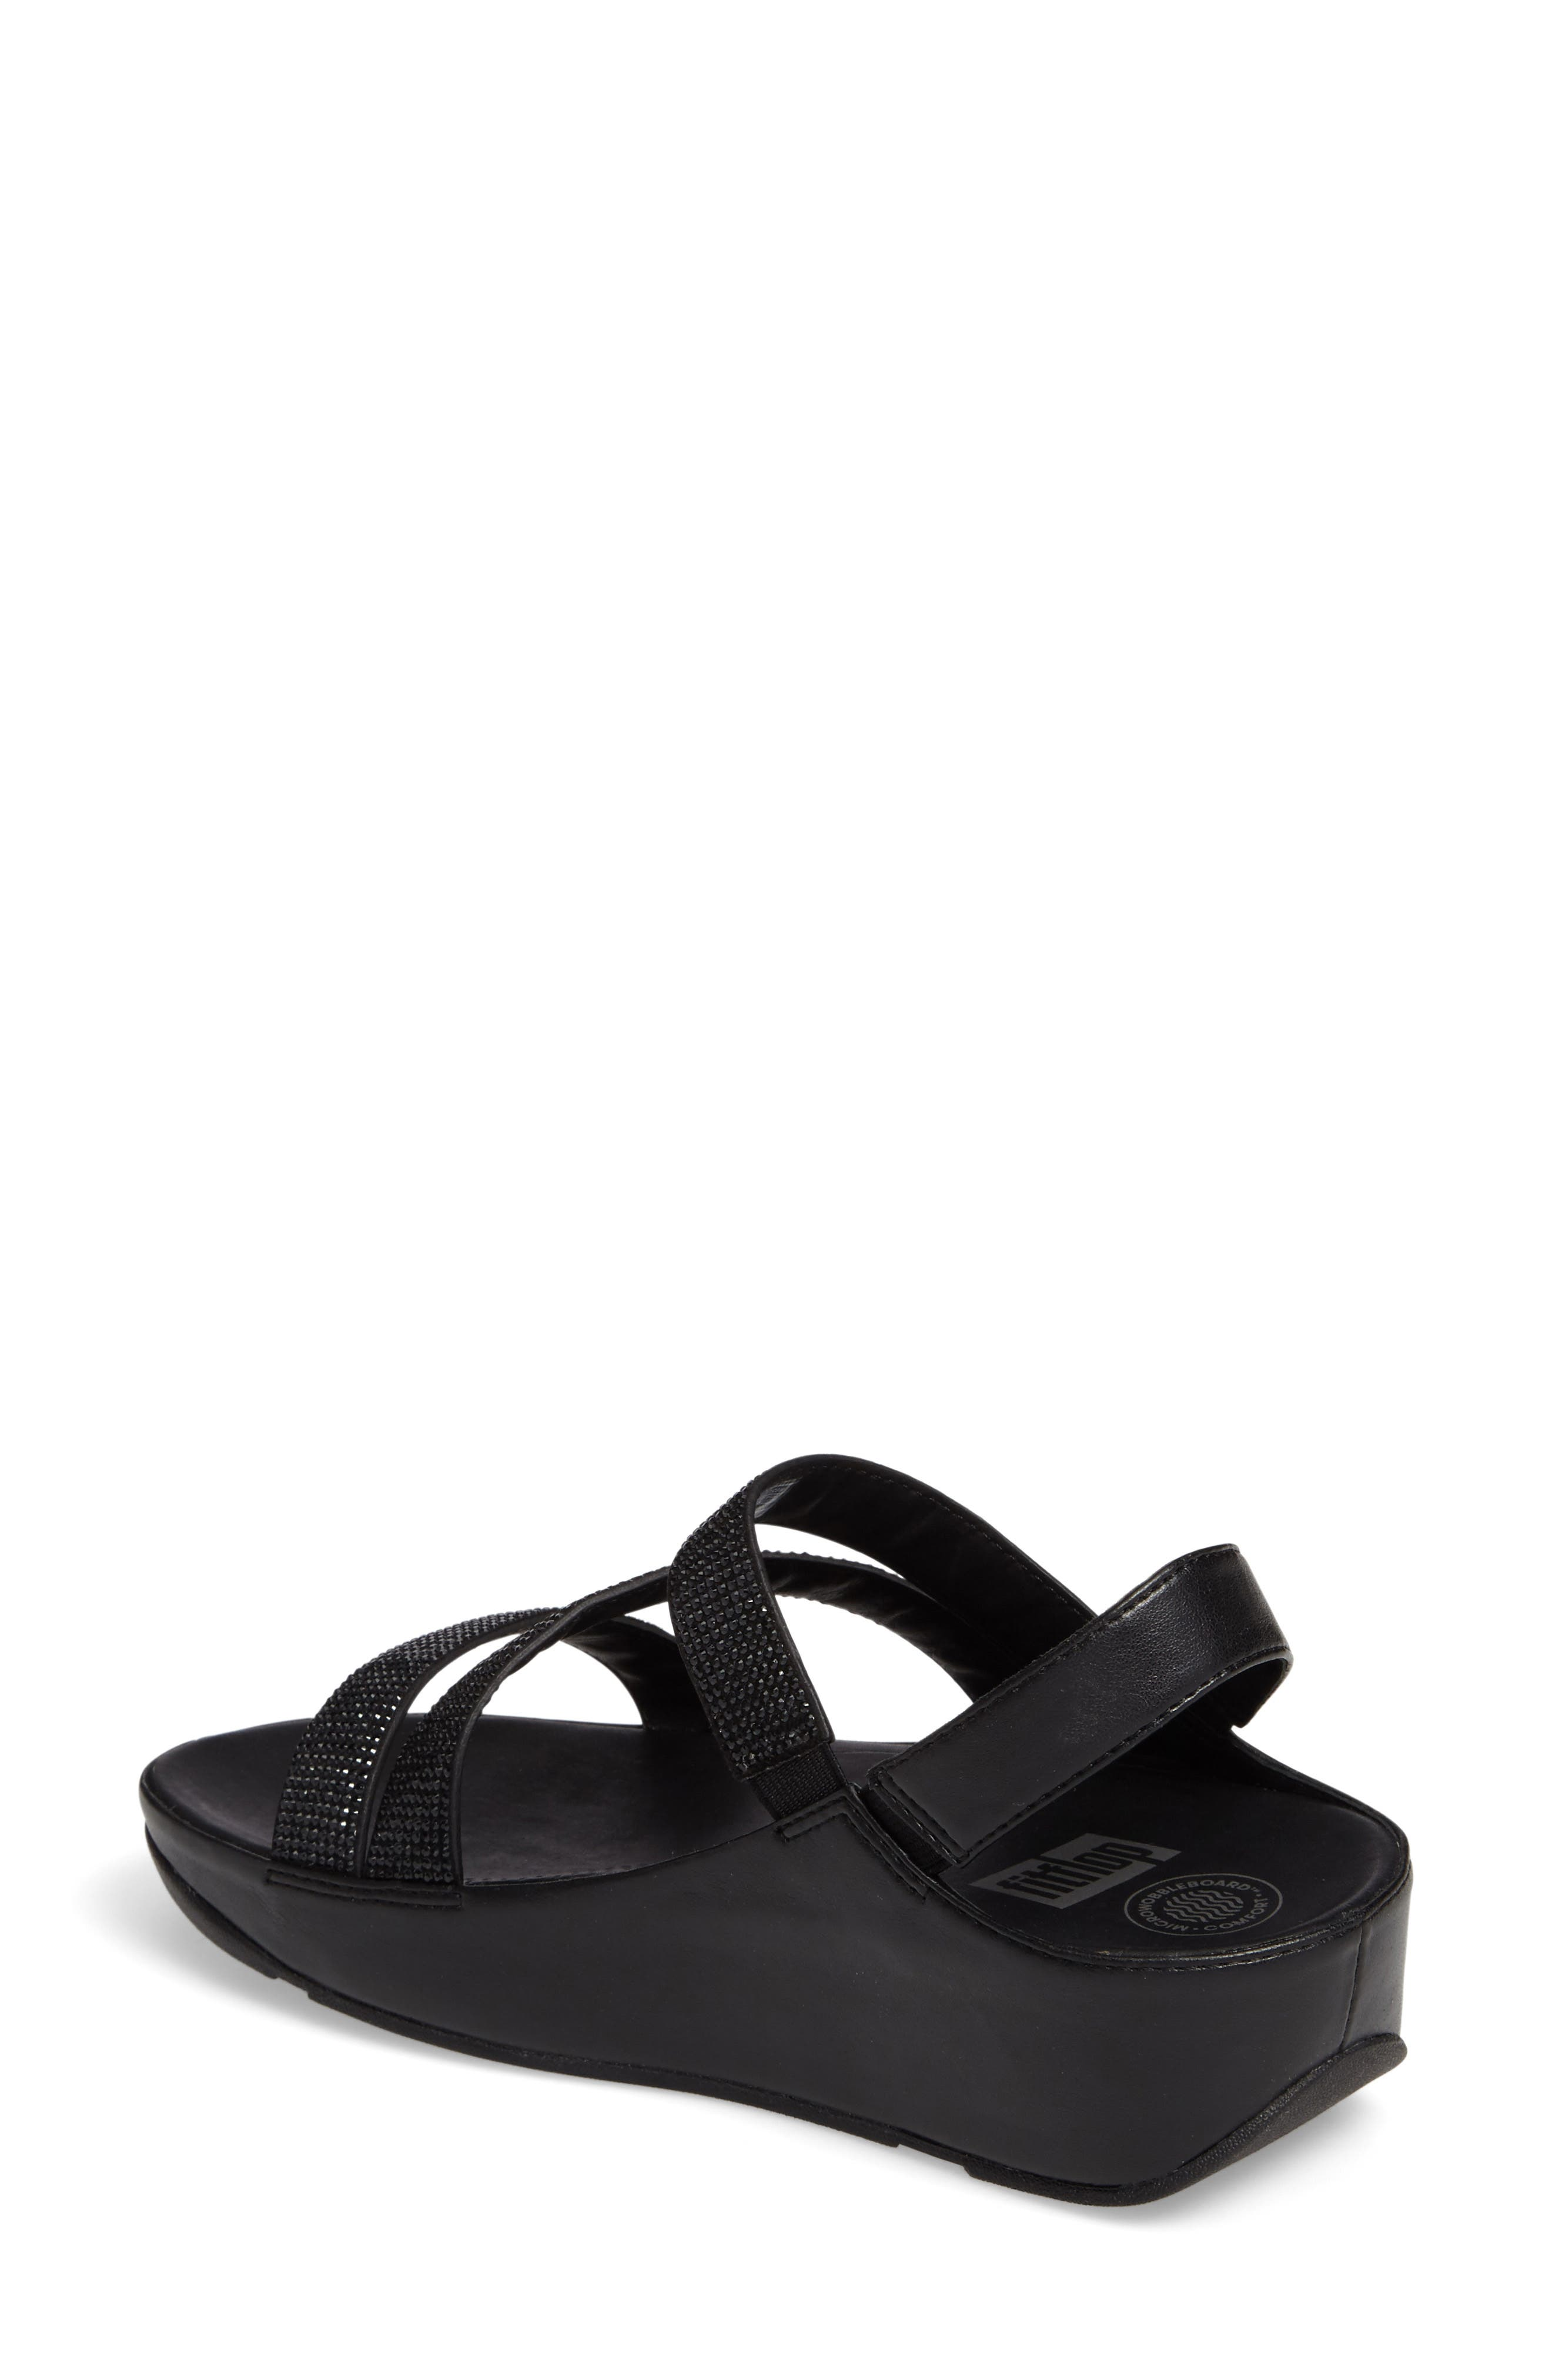 FITFLOP,                              Crystall Wedge Sandal,                             Alternate thumbnail 2, color,                             001